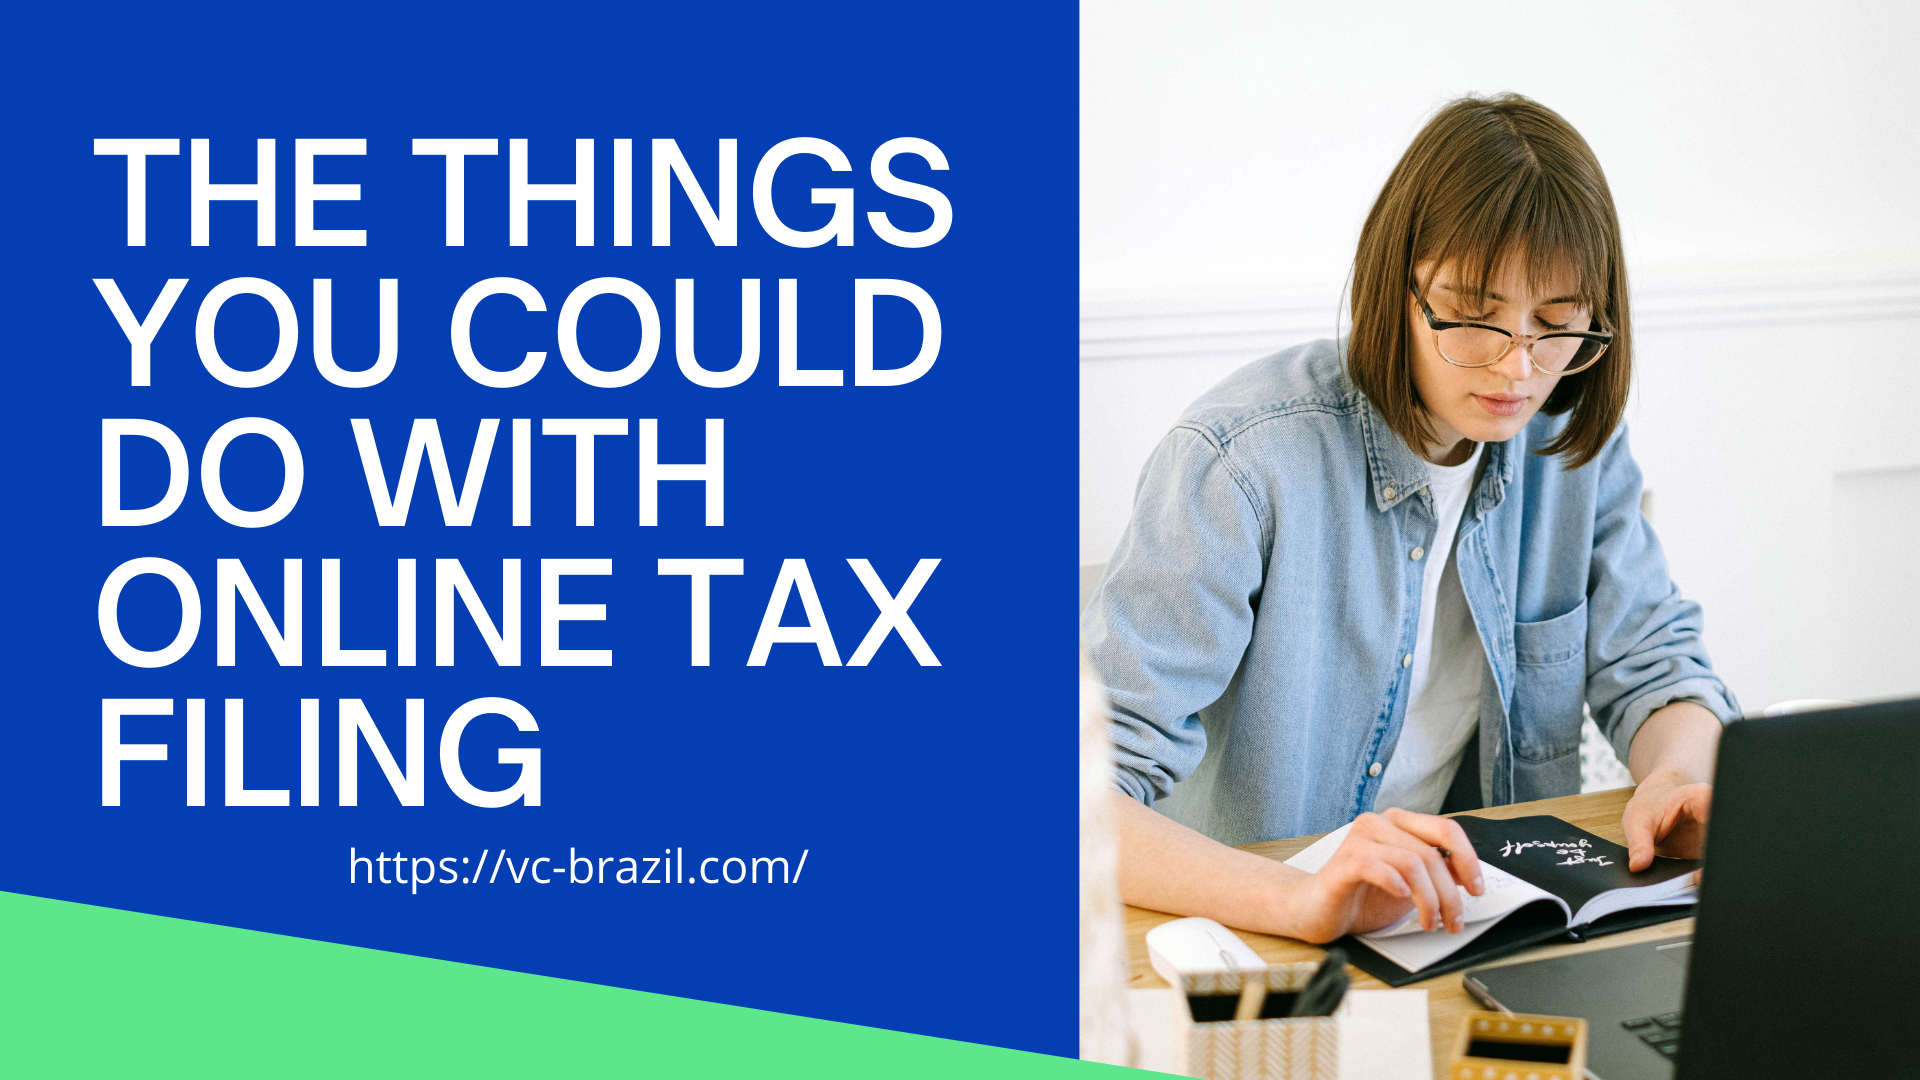 The Things You Could Do With Online Tax Filing